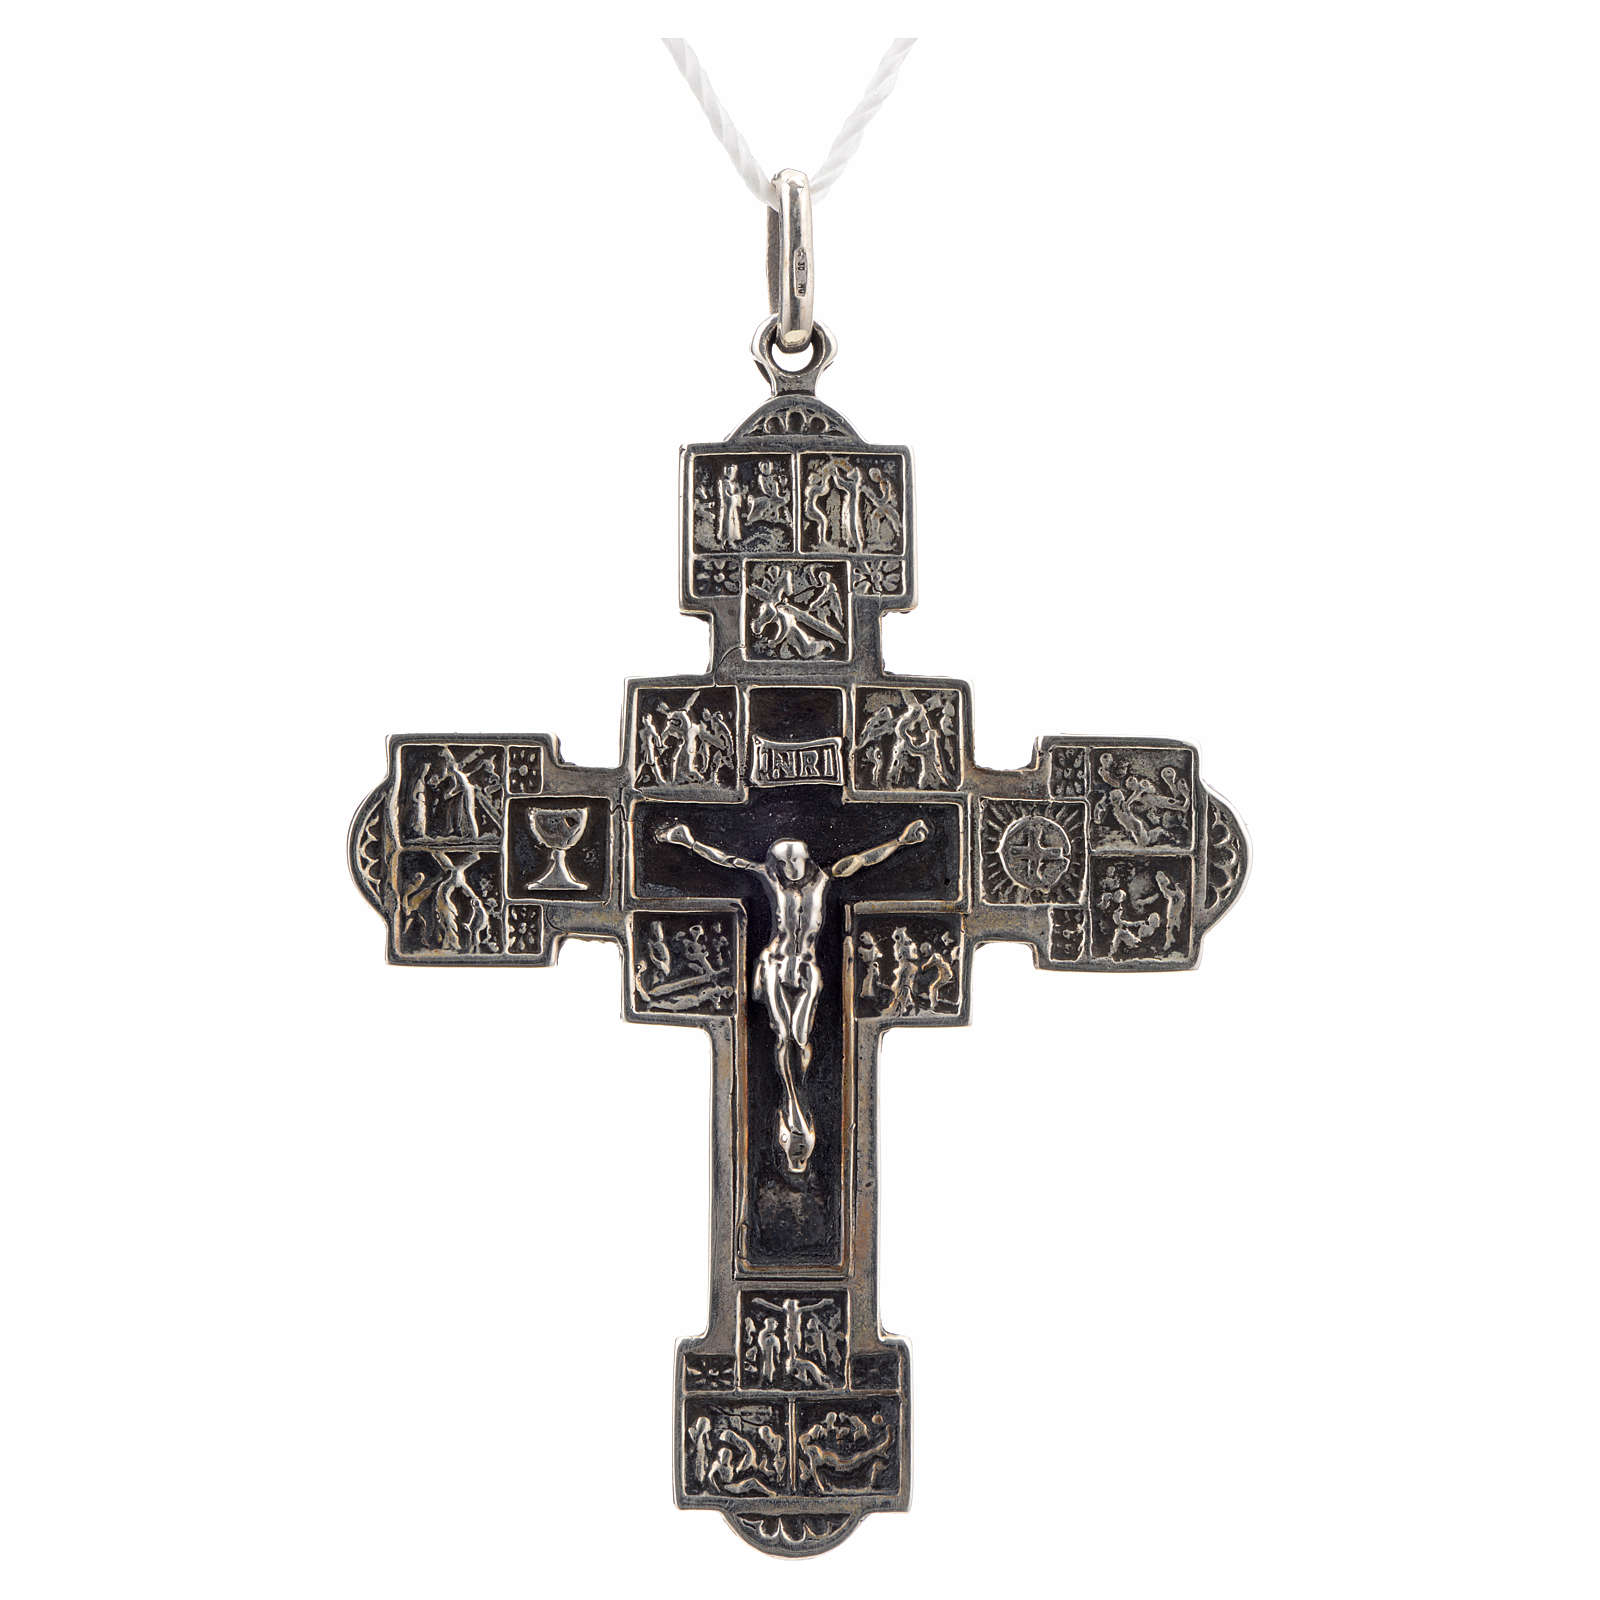 Pendant crucifix with Stations of the Cross, sterling silver 4